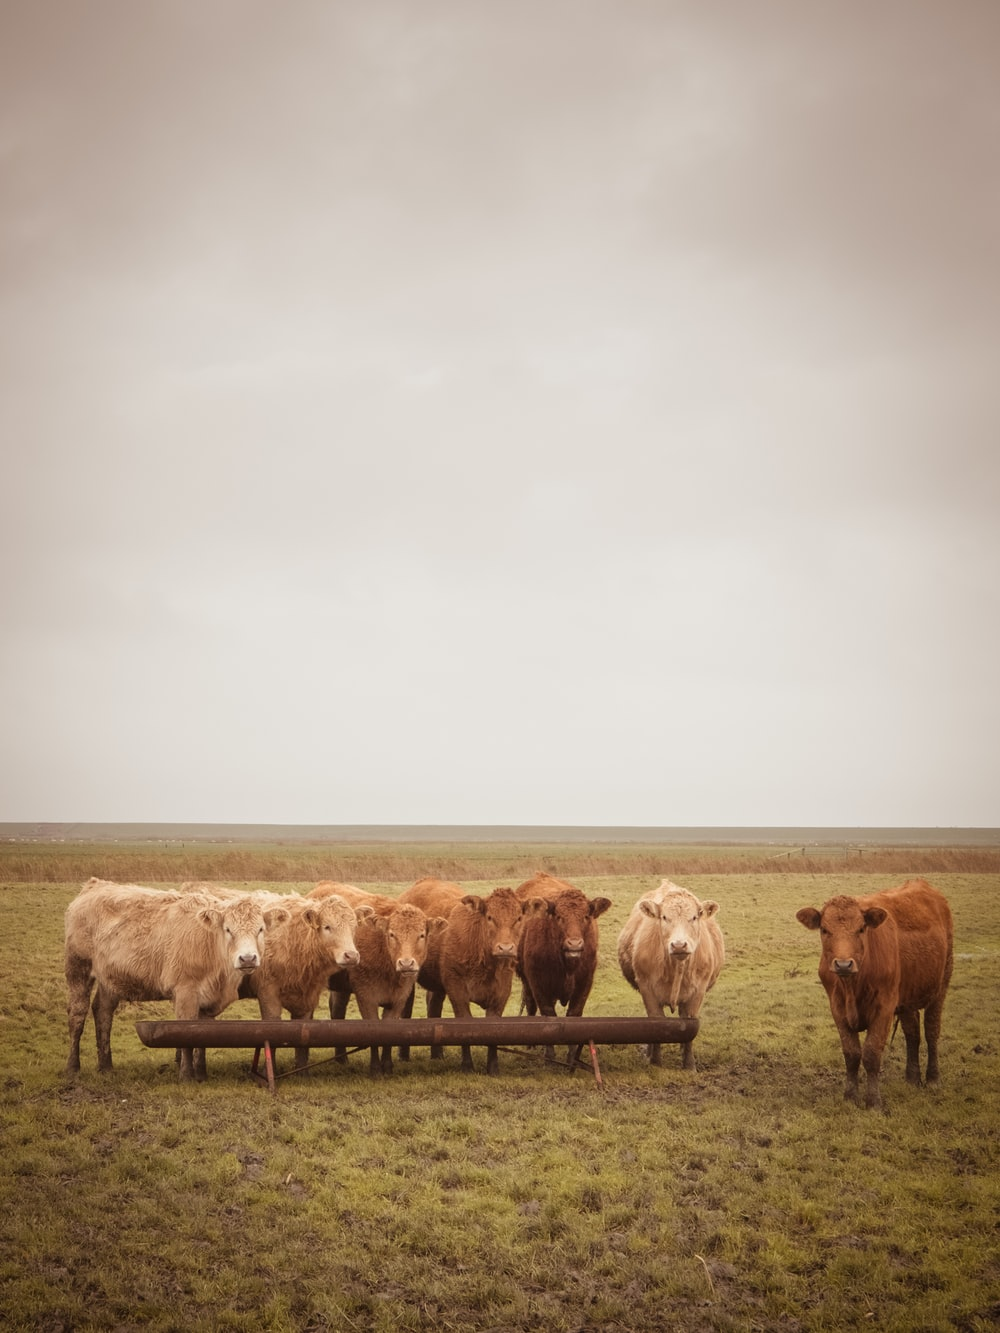 brown cows standing on grass field